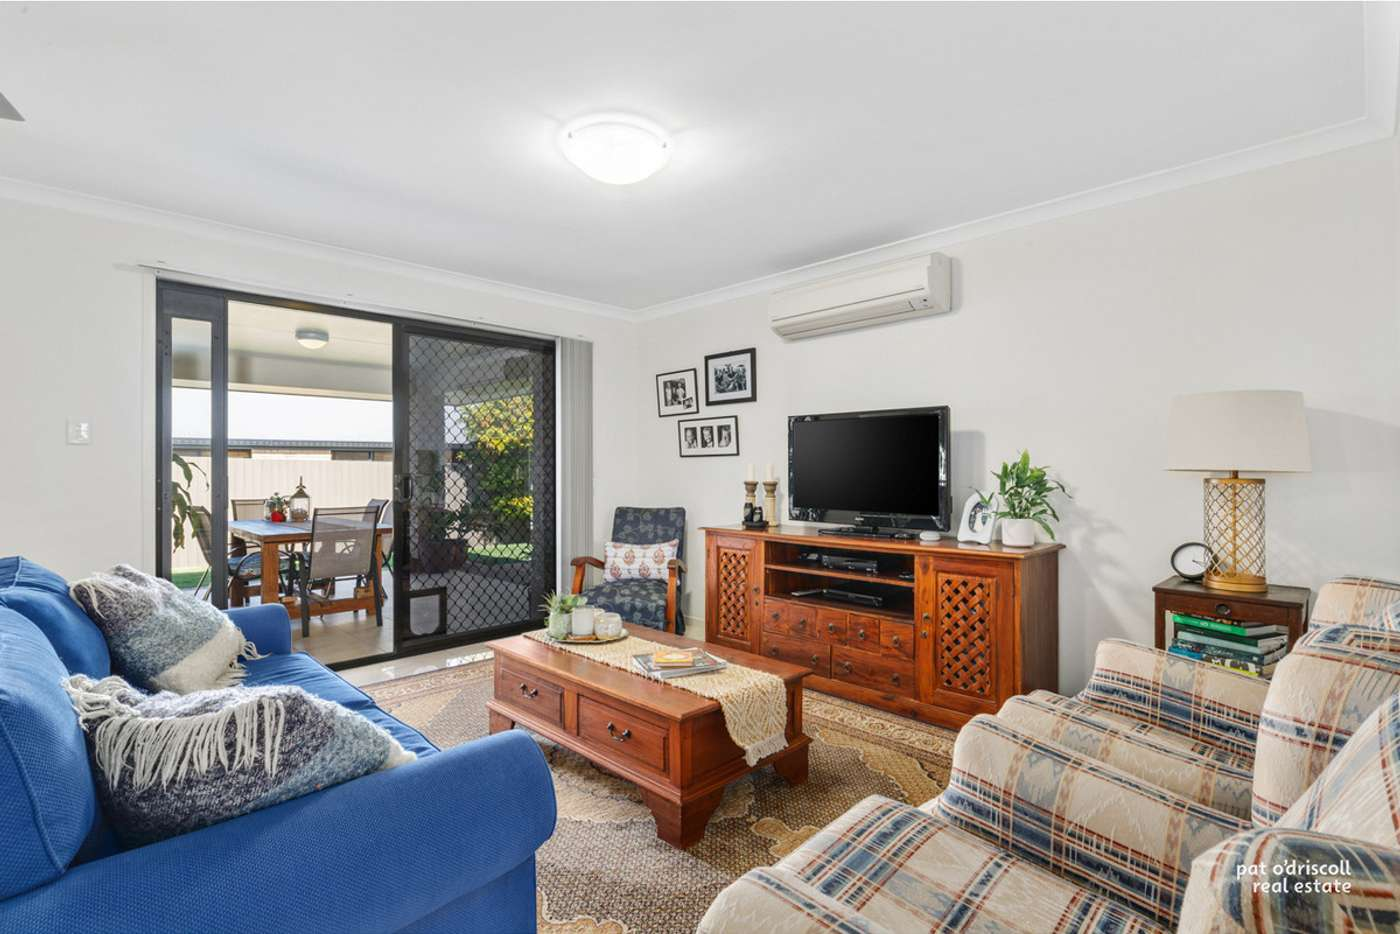 Fifth view of Homely house listing, 6 Cycad Court, Norman Gardens QLD 4701